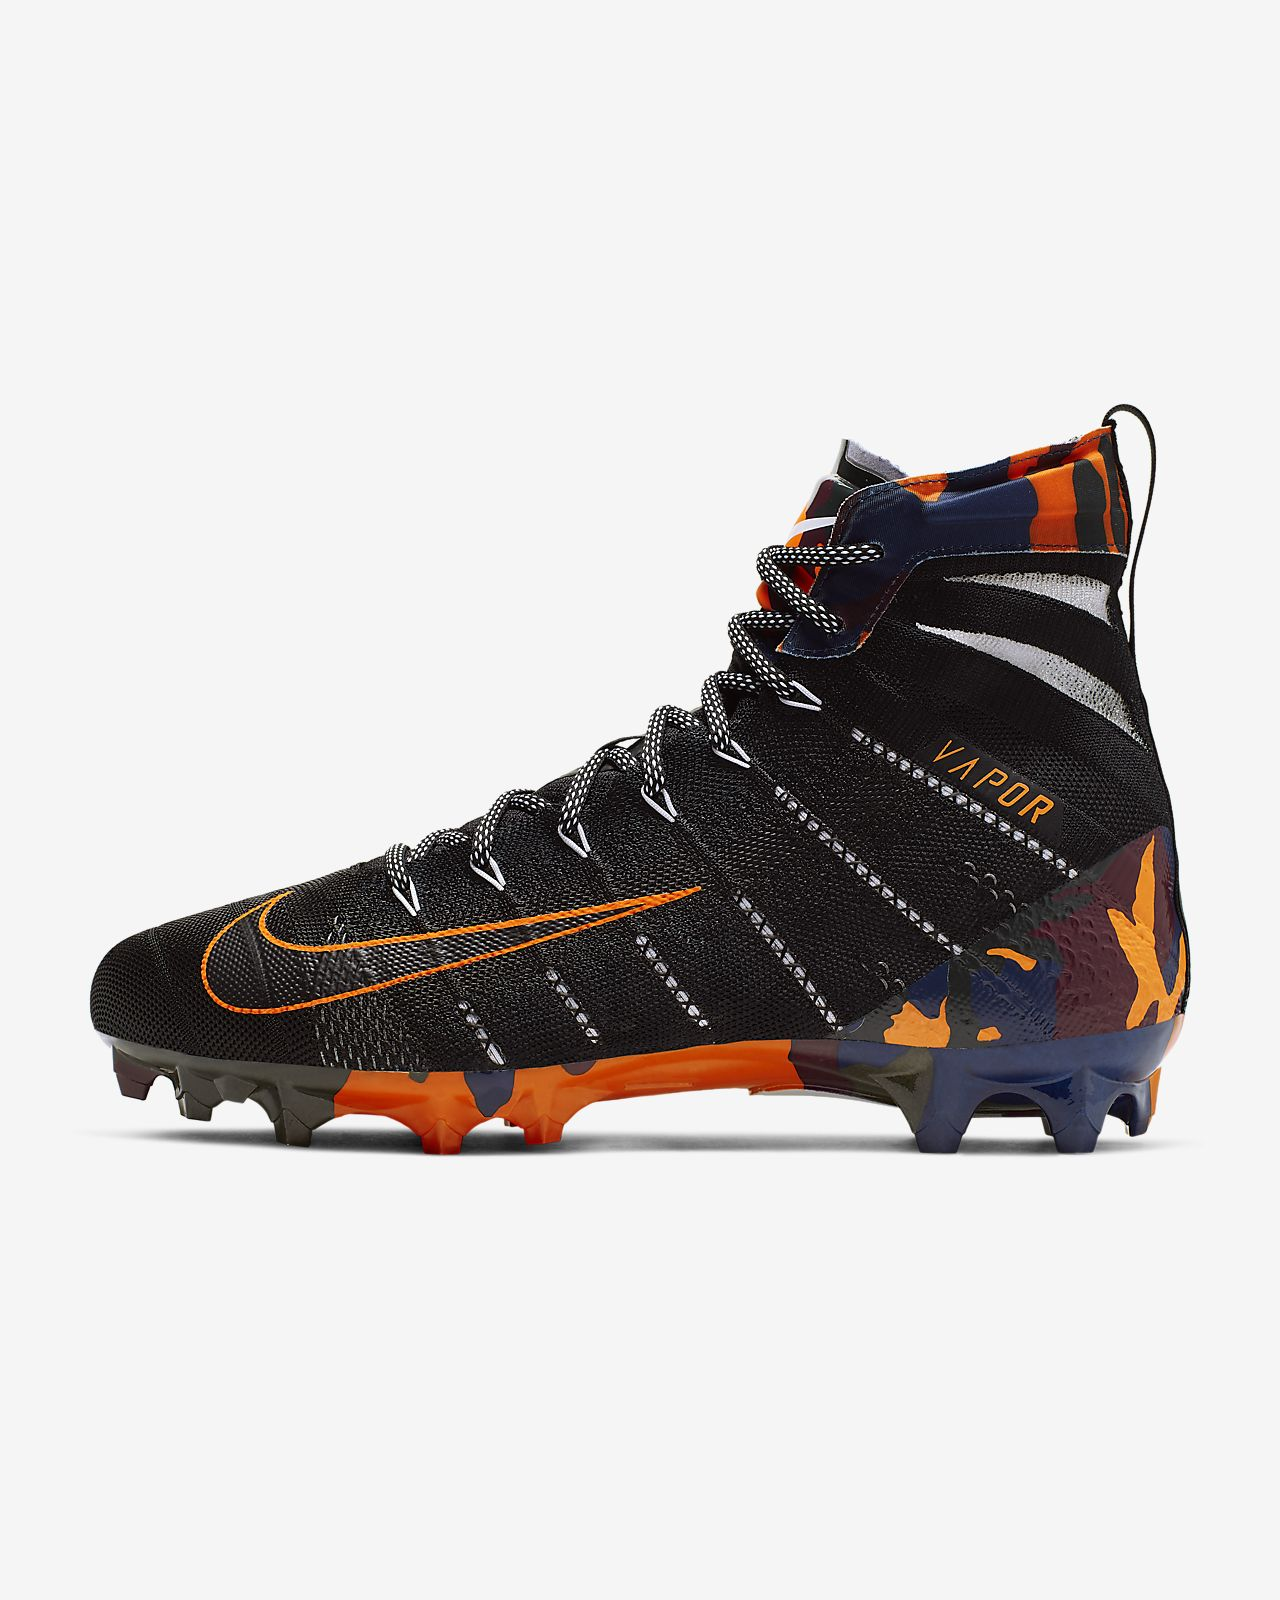 Nike Vapor Untouchable 3 Elite Men's Football Cleat